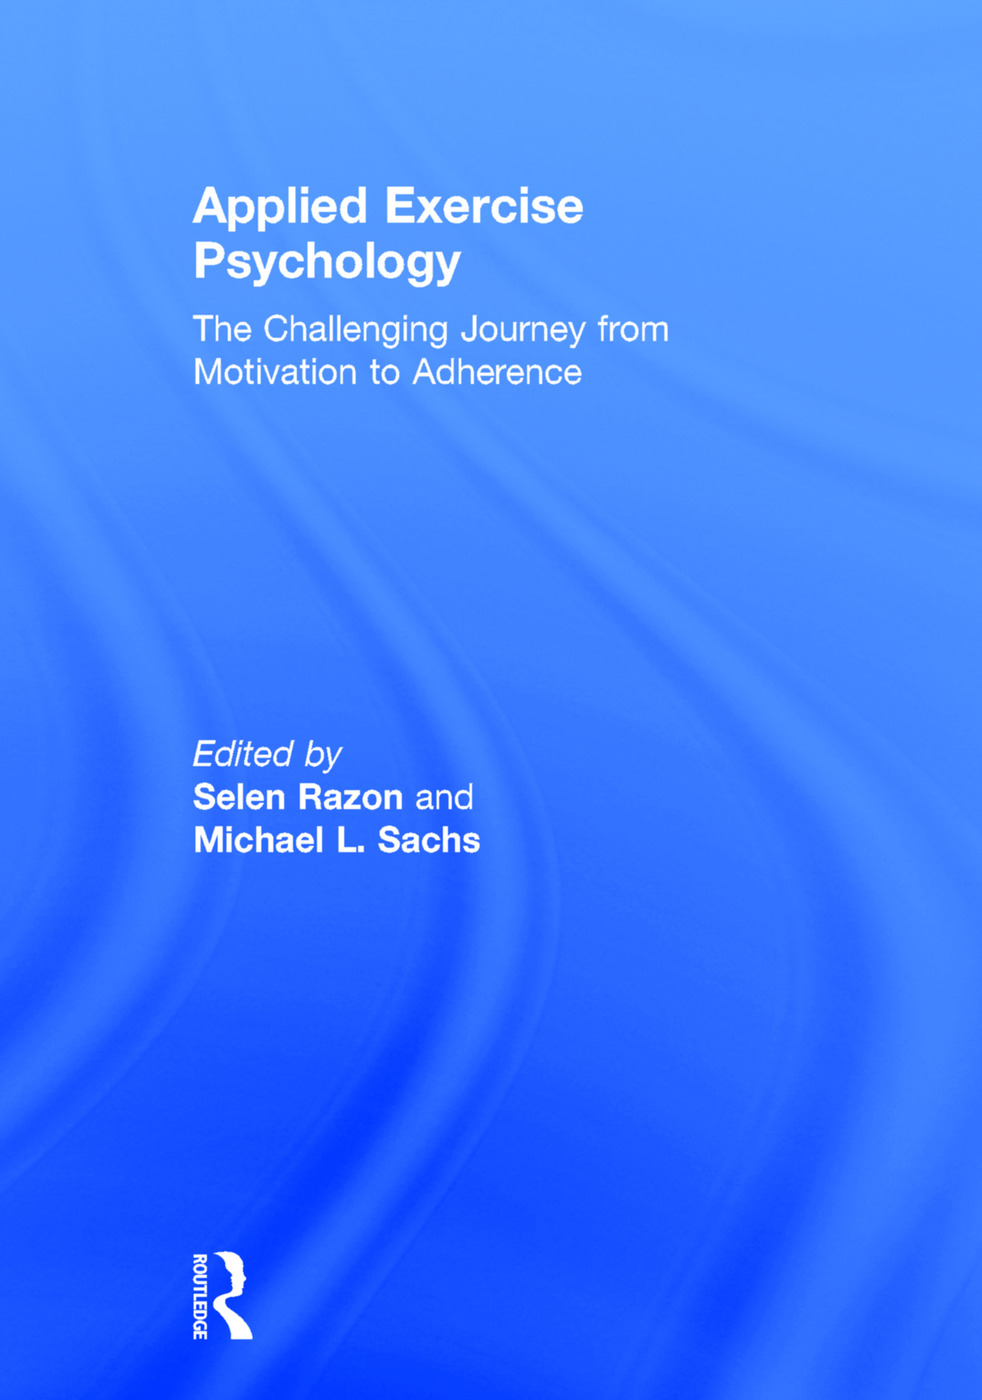 Applied Exercise Psychology: The Challenging Journey from Motivation to Adherence book cover